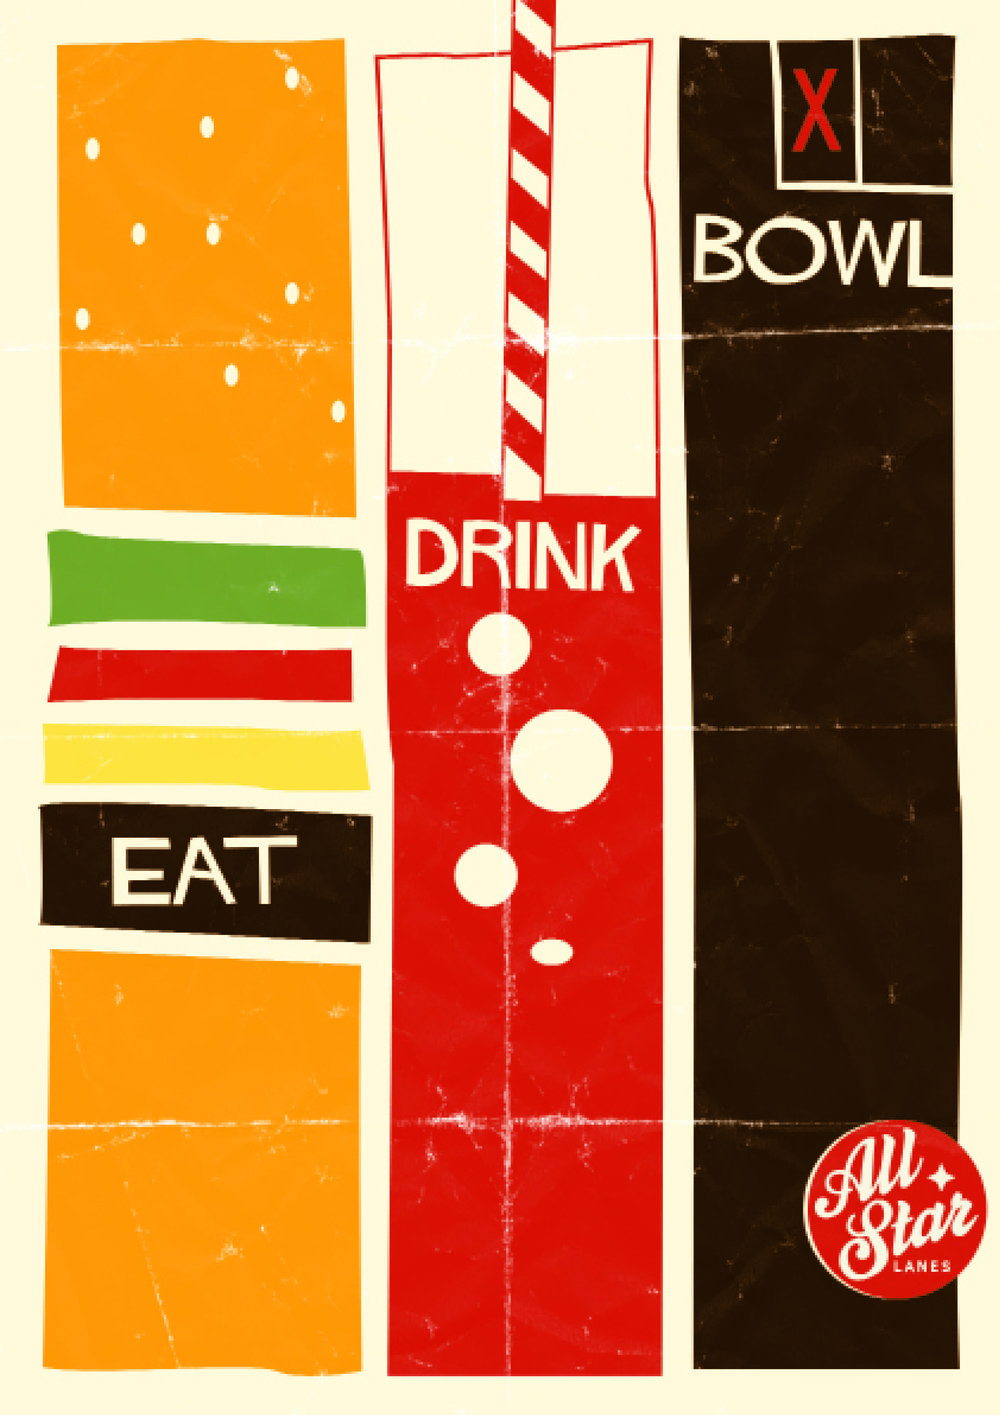 ALL STAR LANES - POSTER DESIGN